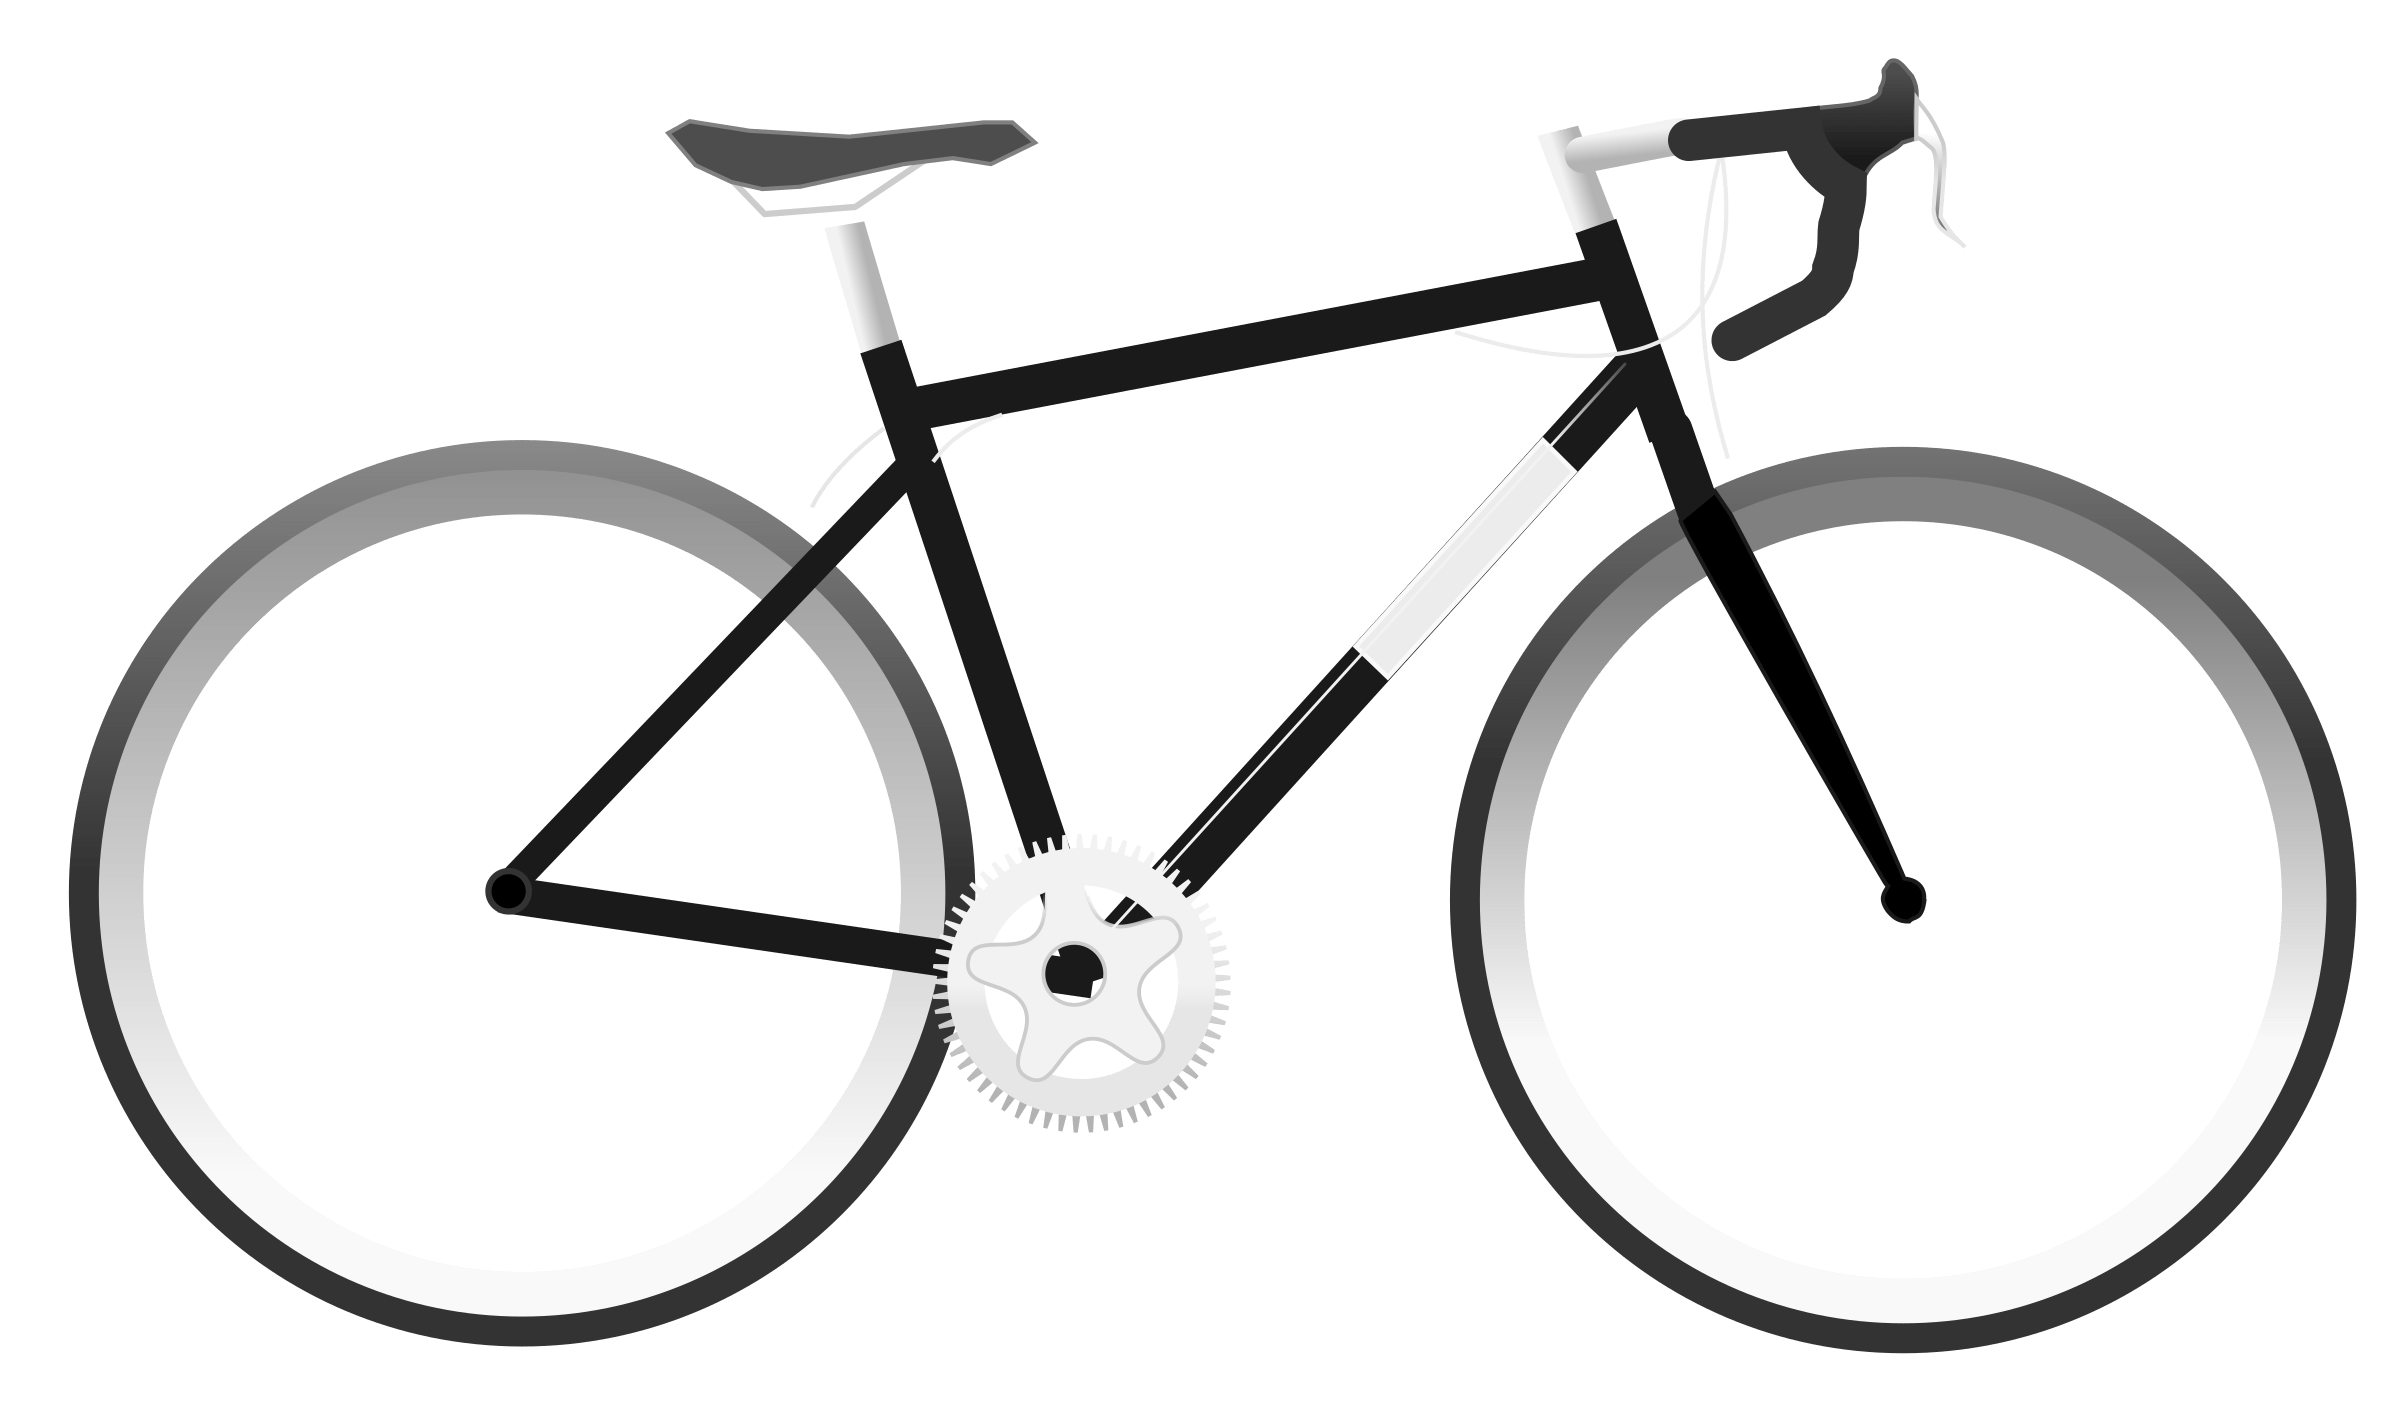 Cycle clipart vector royalty free stock Simple Bike Clipart transparent PNG - StickPNG vector royalty free stock